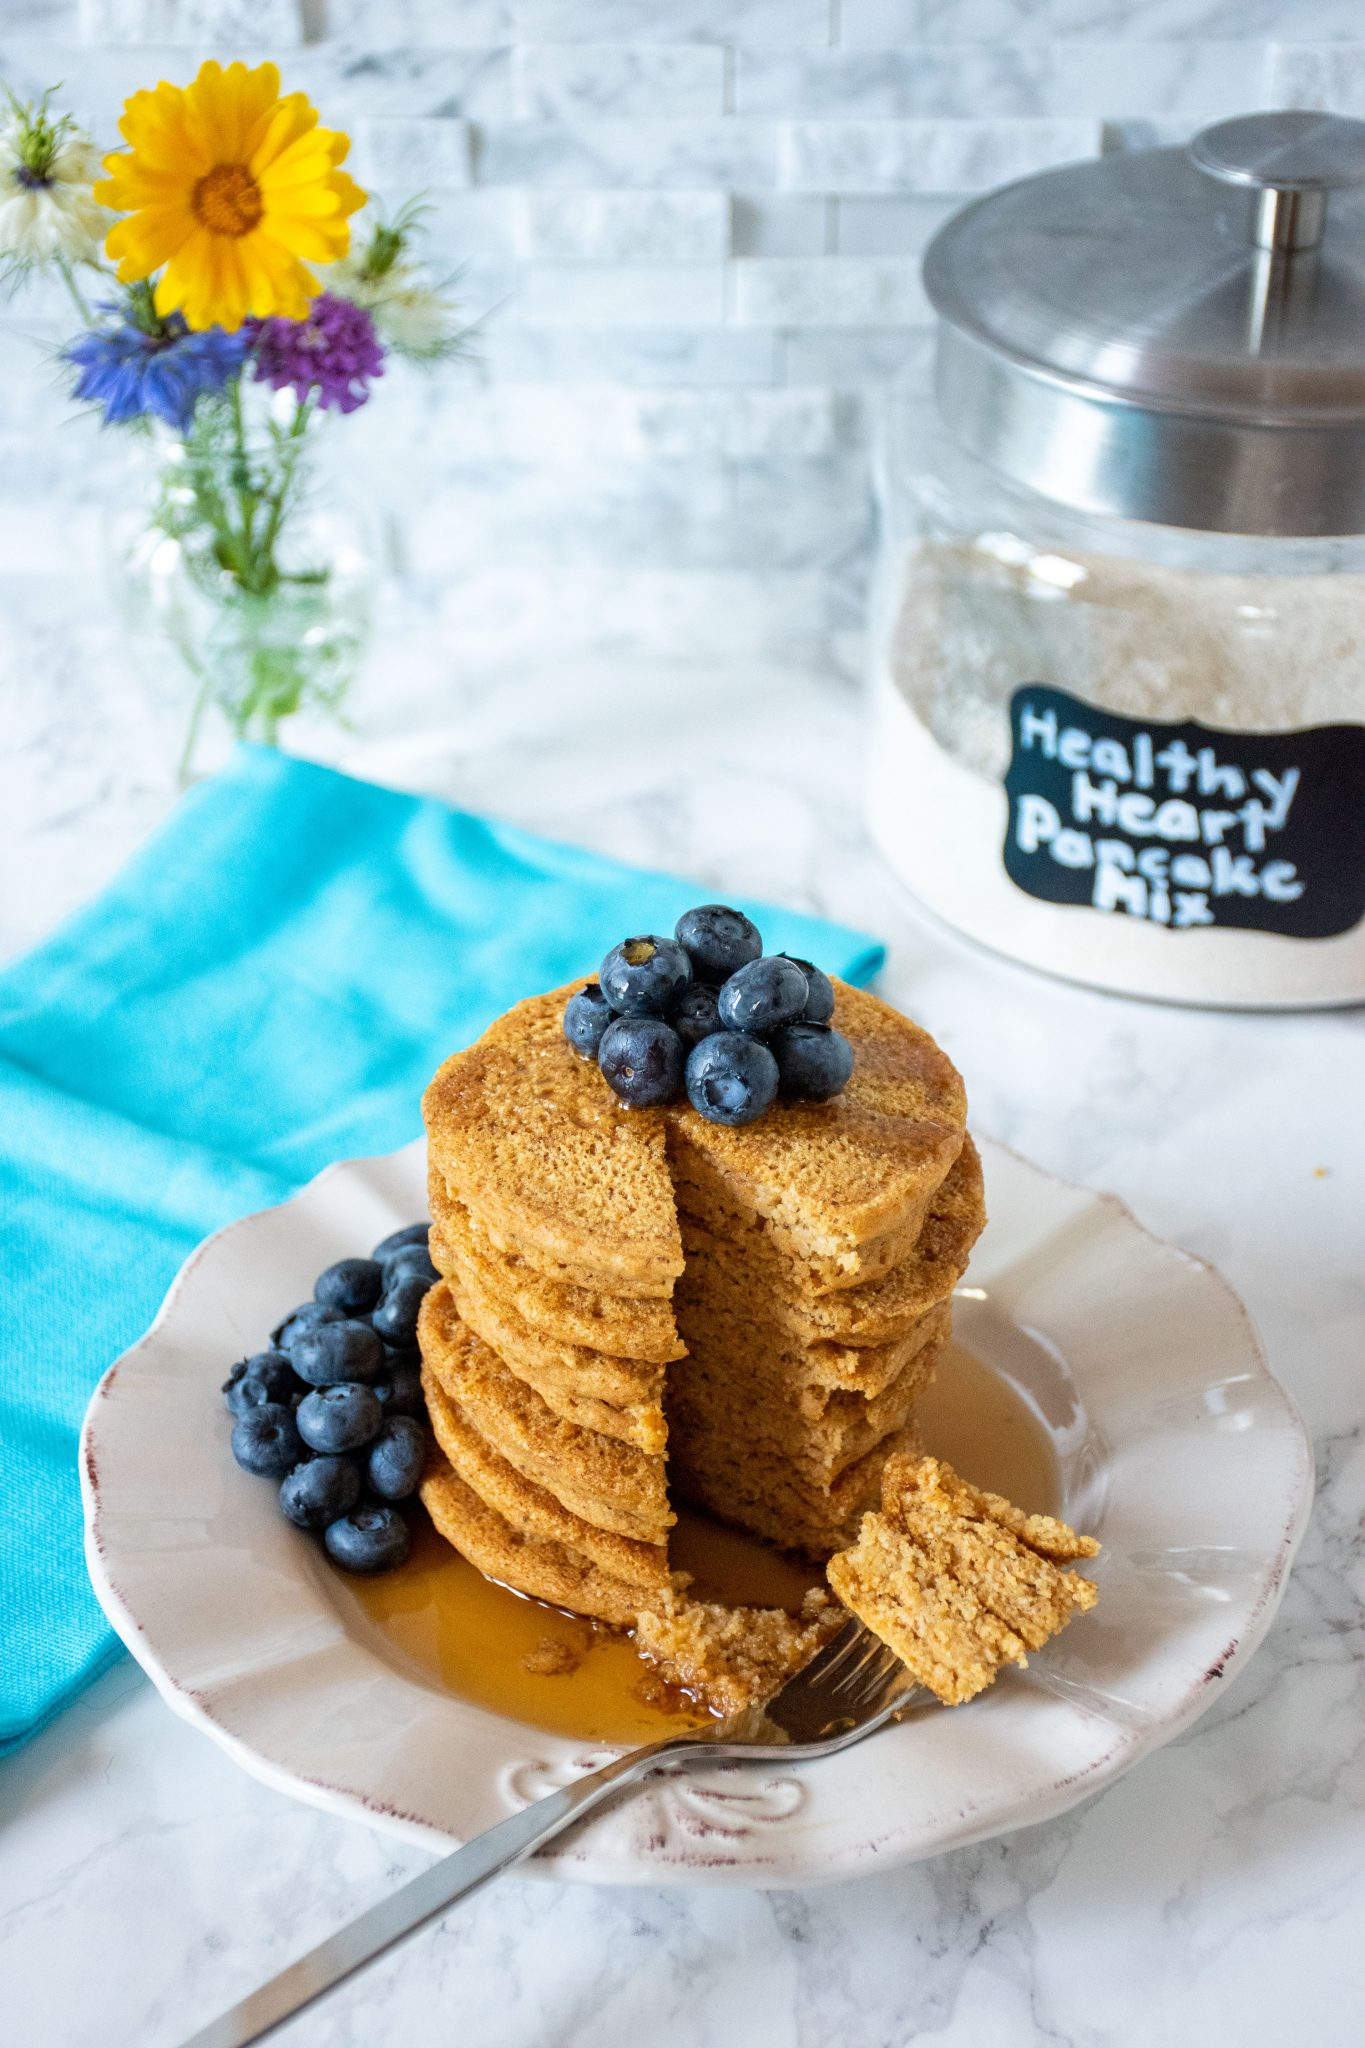 Stack of 6 whole wheat pancakes, with a pile of fresh blueberries on top, and syrup poured over. A fork with cut pieces of pancakes on it lies in front of the stack. Glass jar of heart healthy pancake mix is visible in the background with a bouquet of flowers.